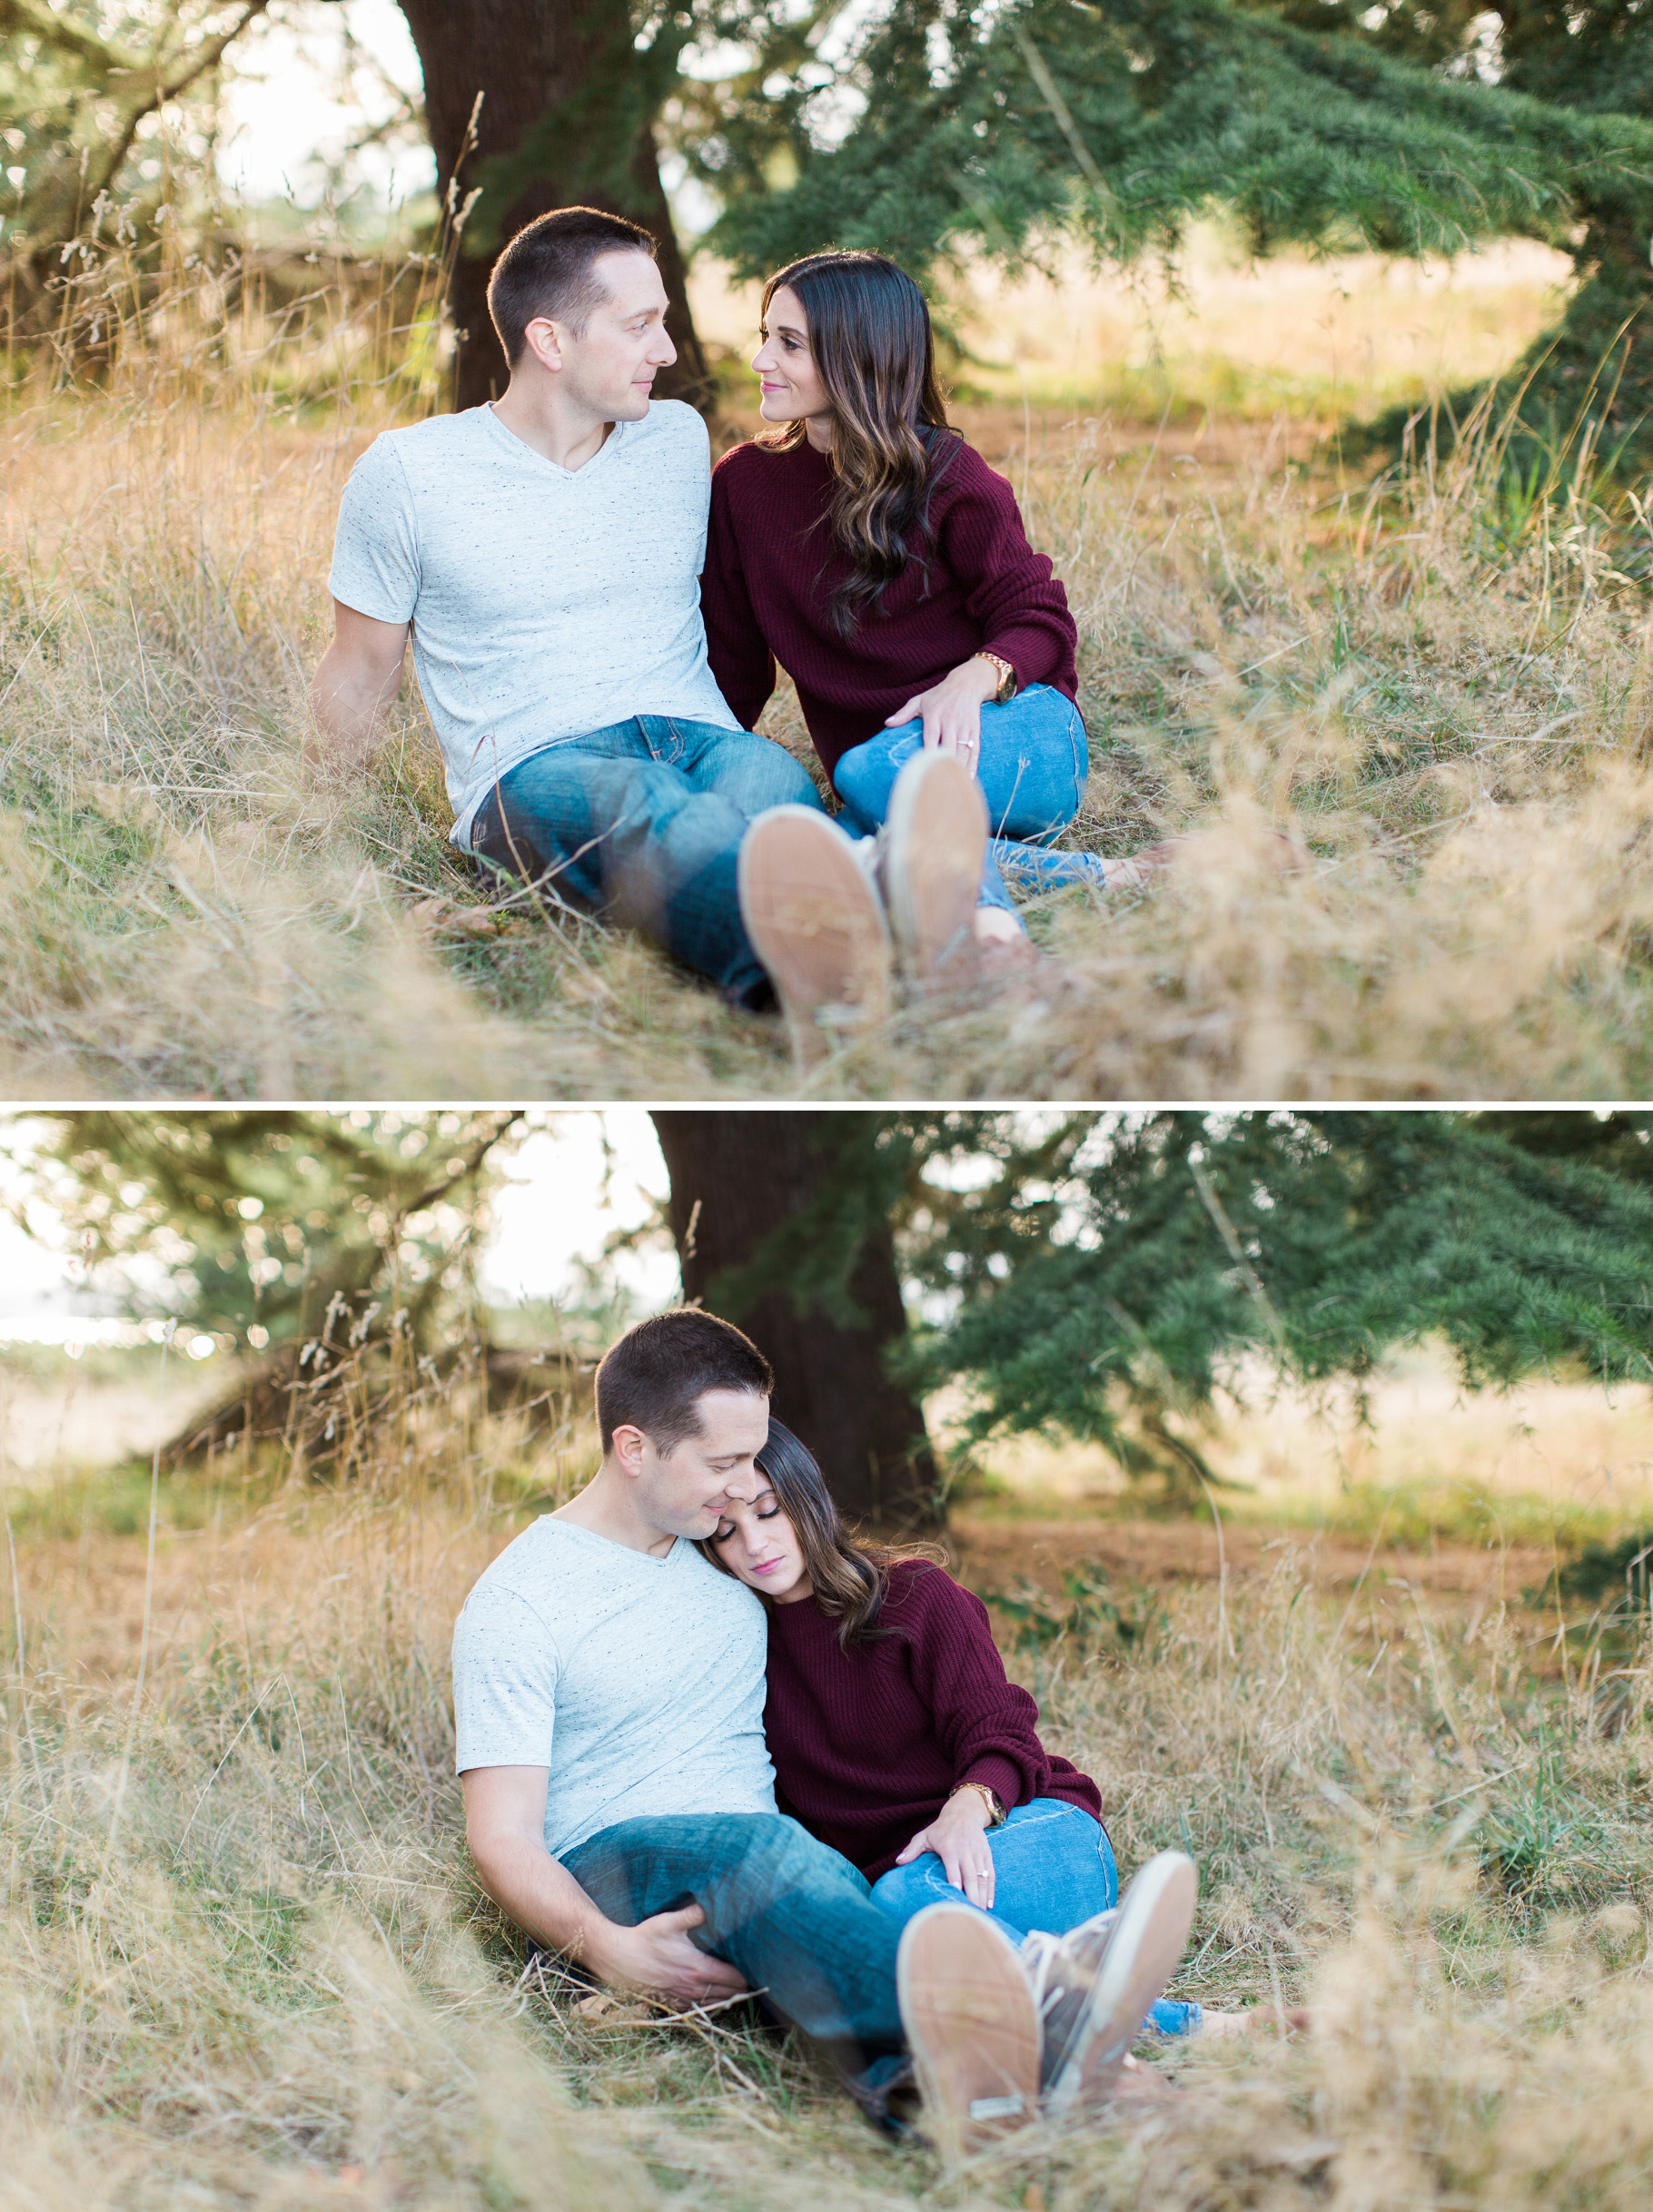 Discovery-Park-Seattle-Engagment-Photographer-Wedding-Photography-by-Betty-Elaine_0004